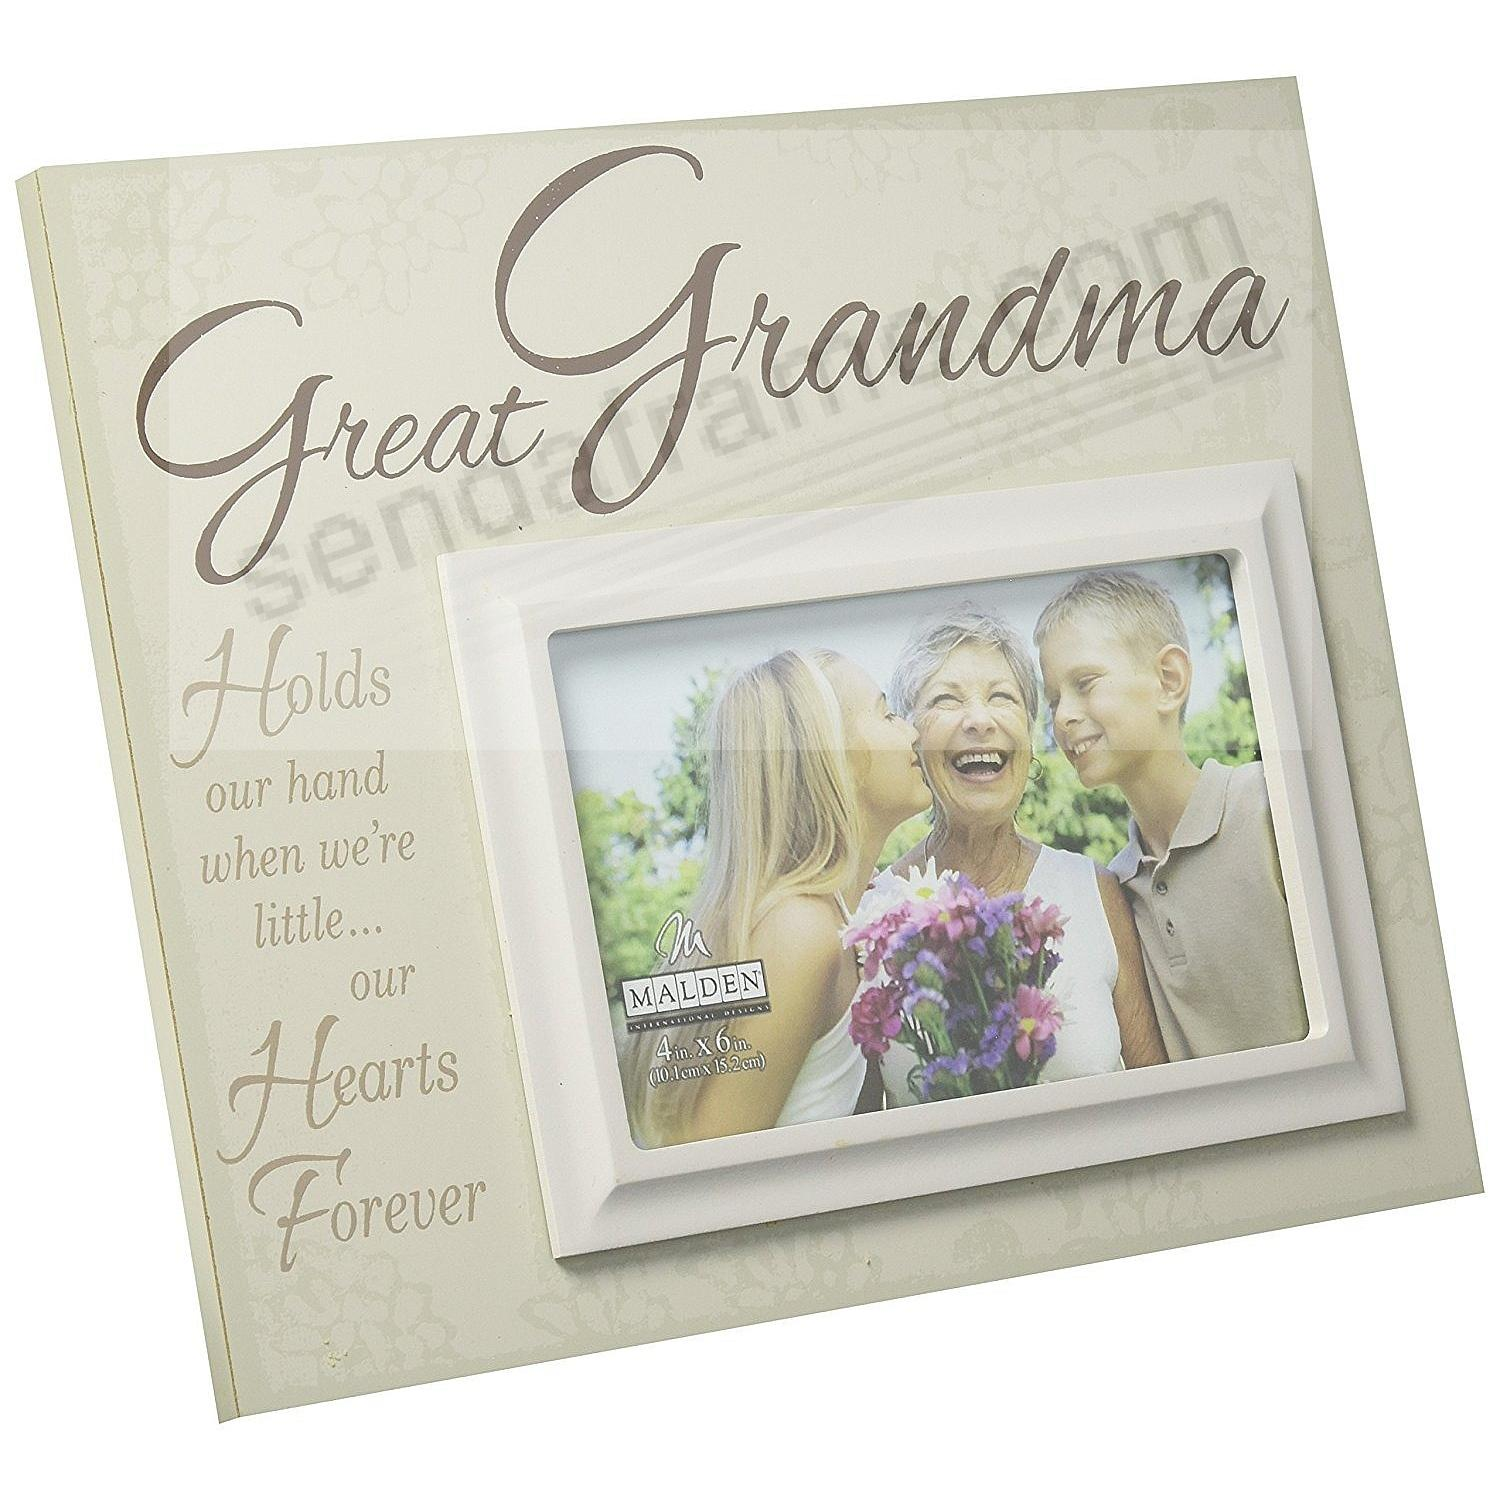 GREAT GRANDMA QUOTATION SCRIPT keepsake frame